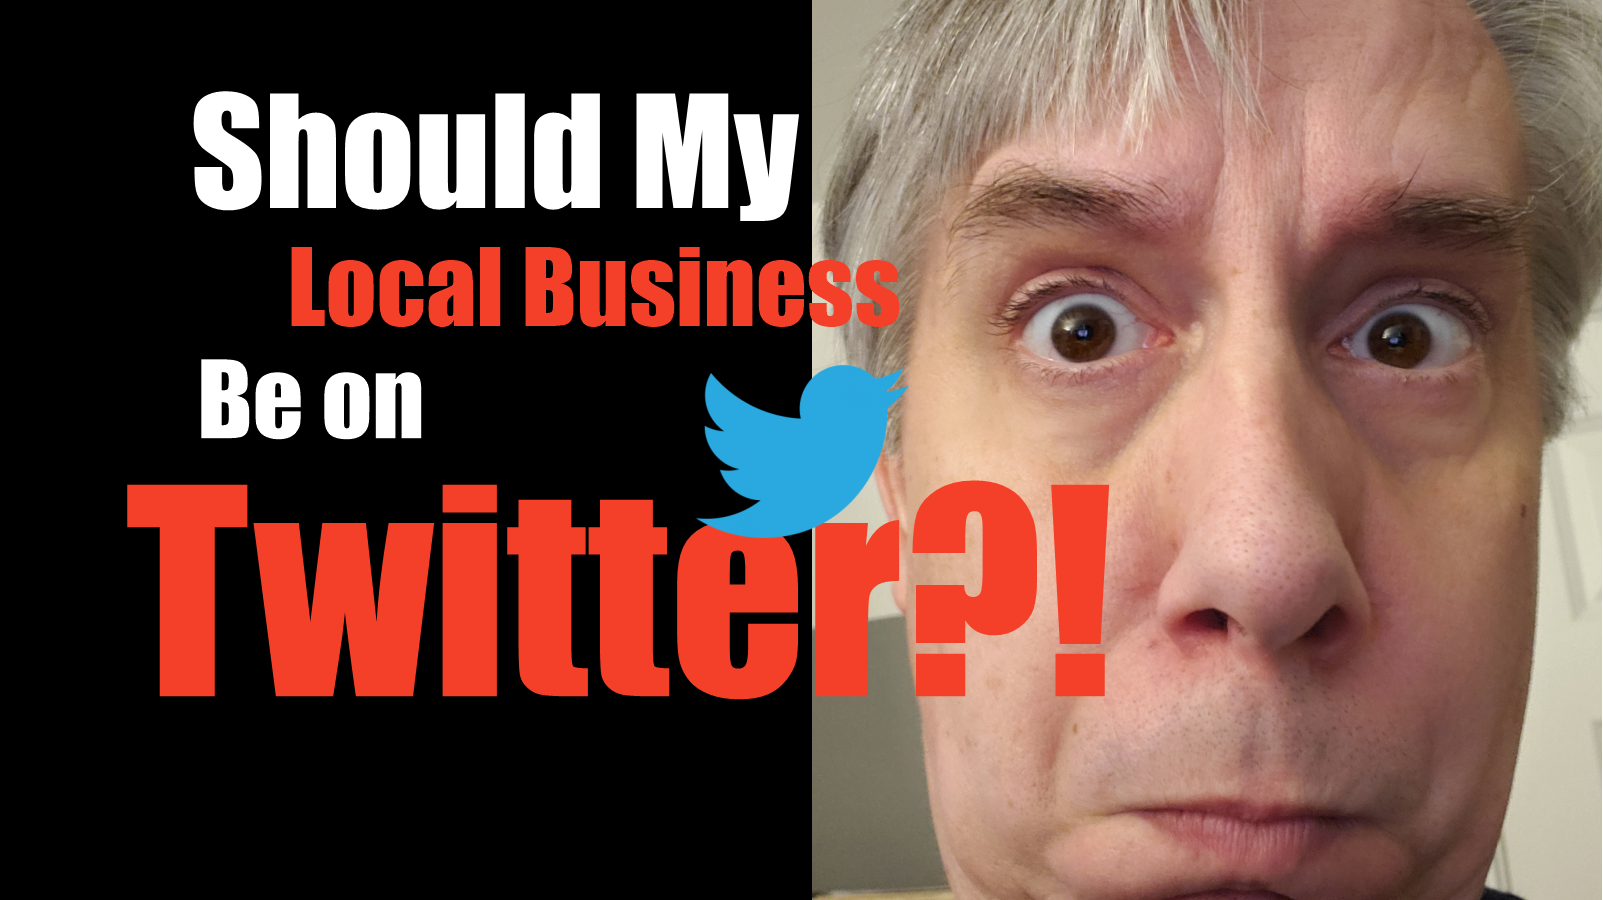 Should my local business be on Twitter?!